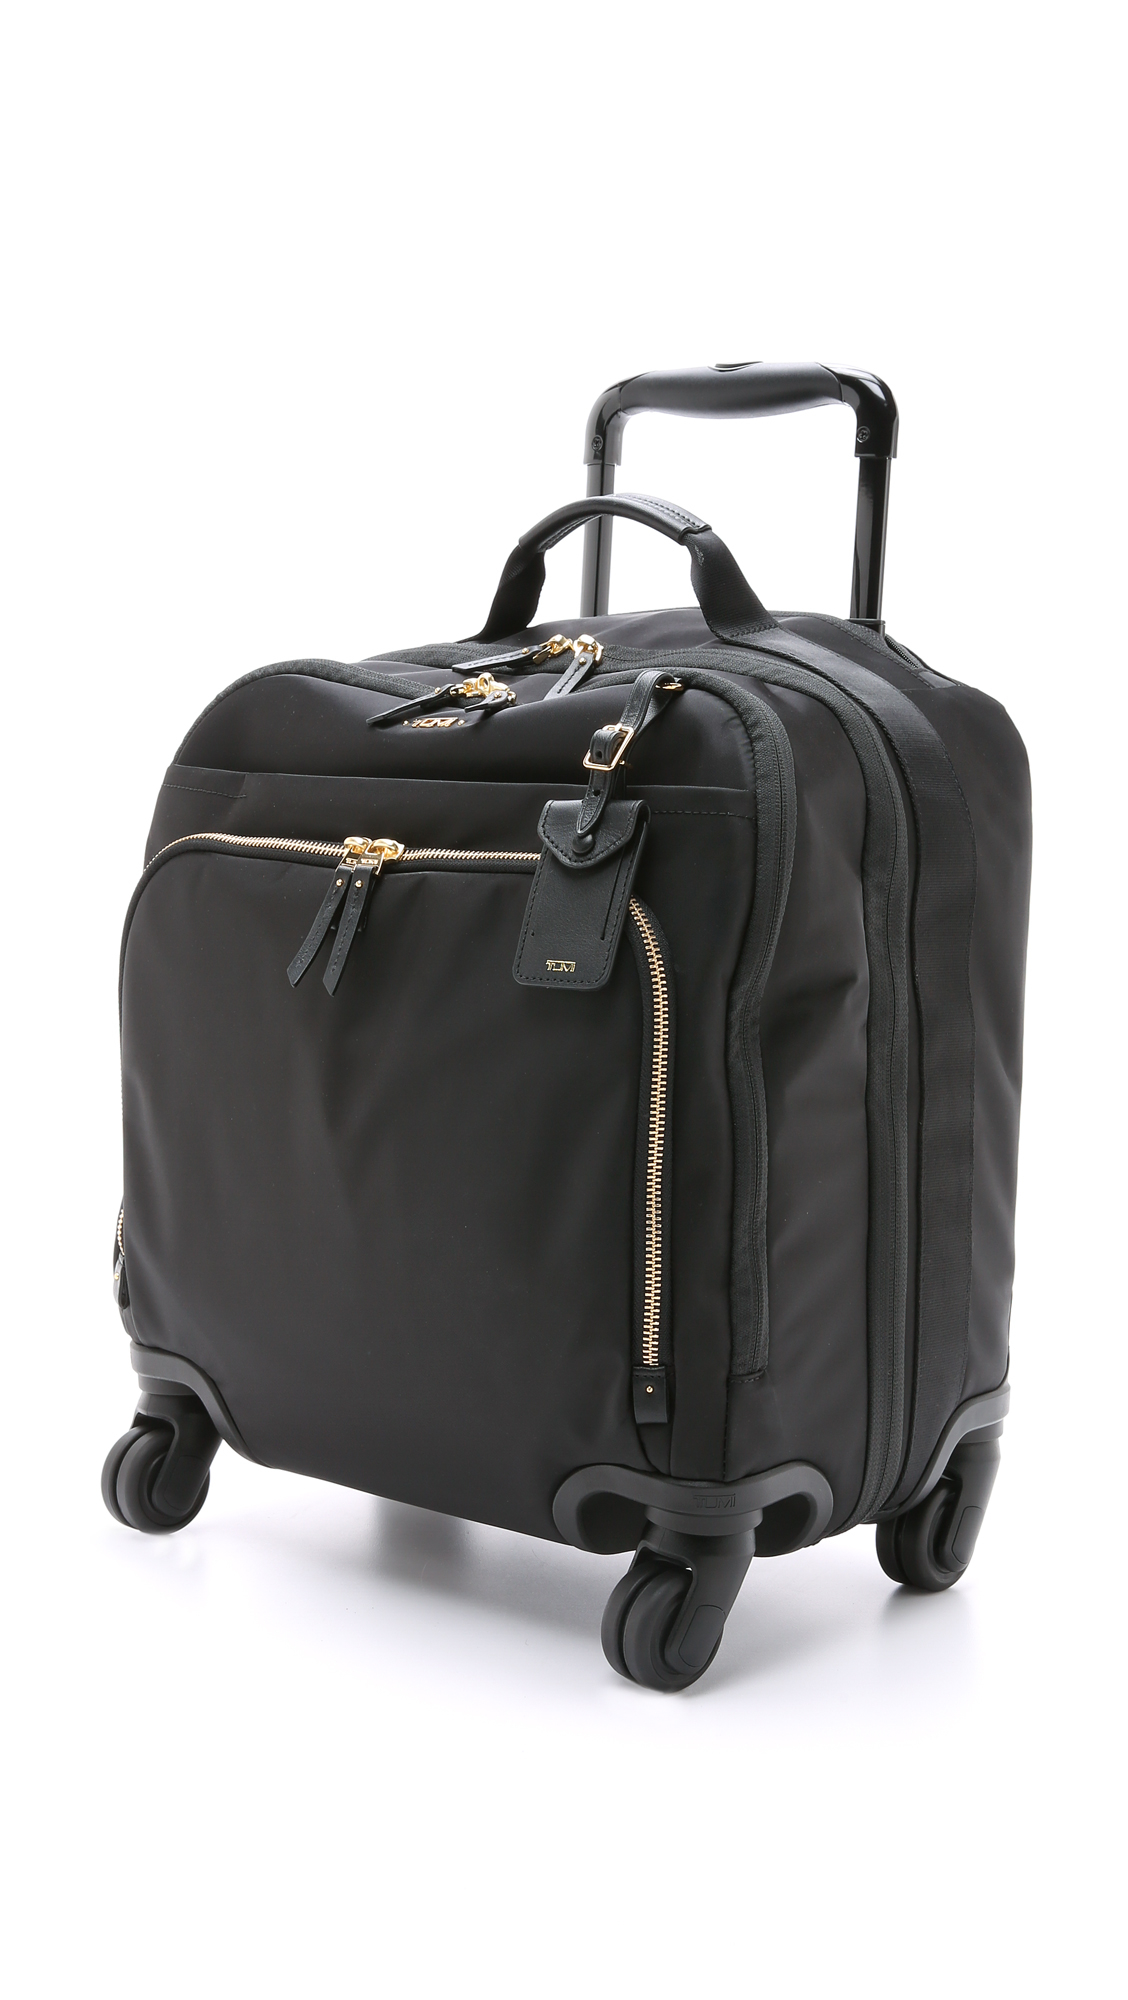 Tumi Oslo 4 Wheel Compact Carry On Luggage - Black in ...